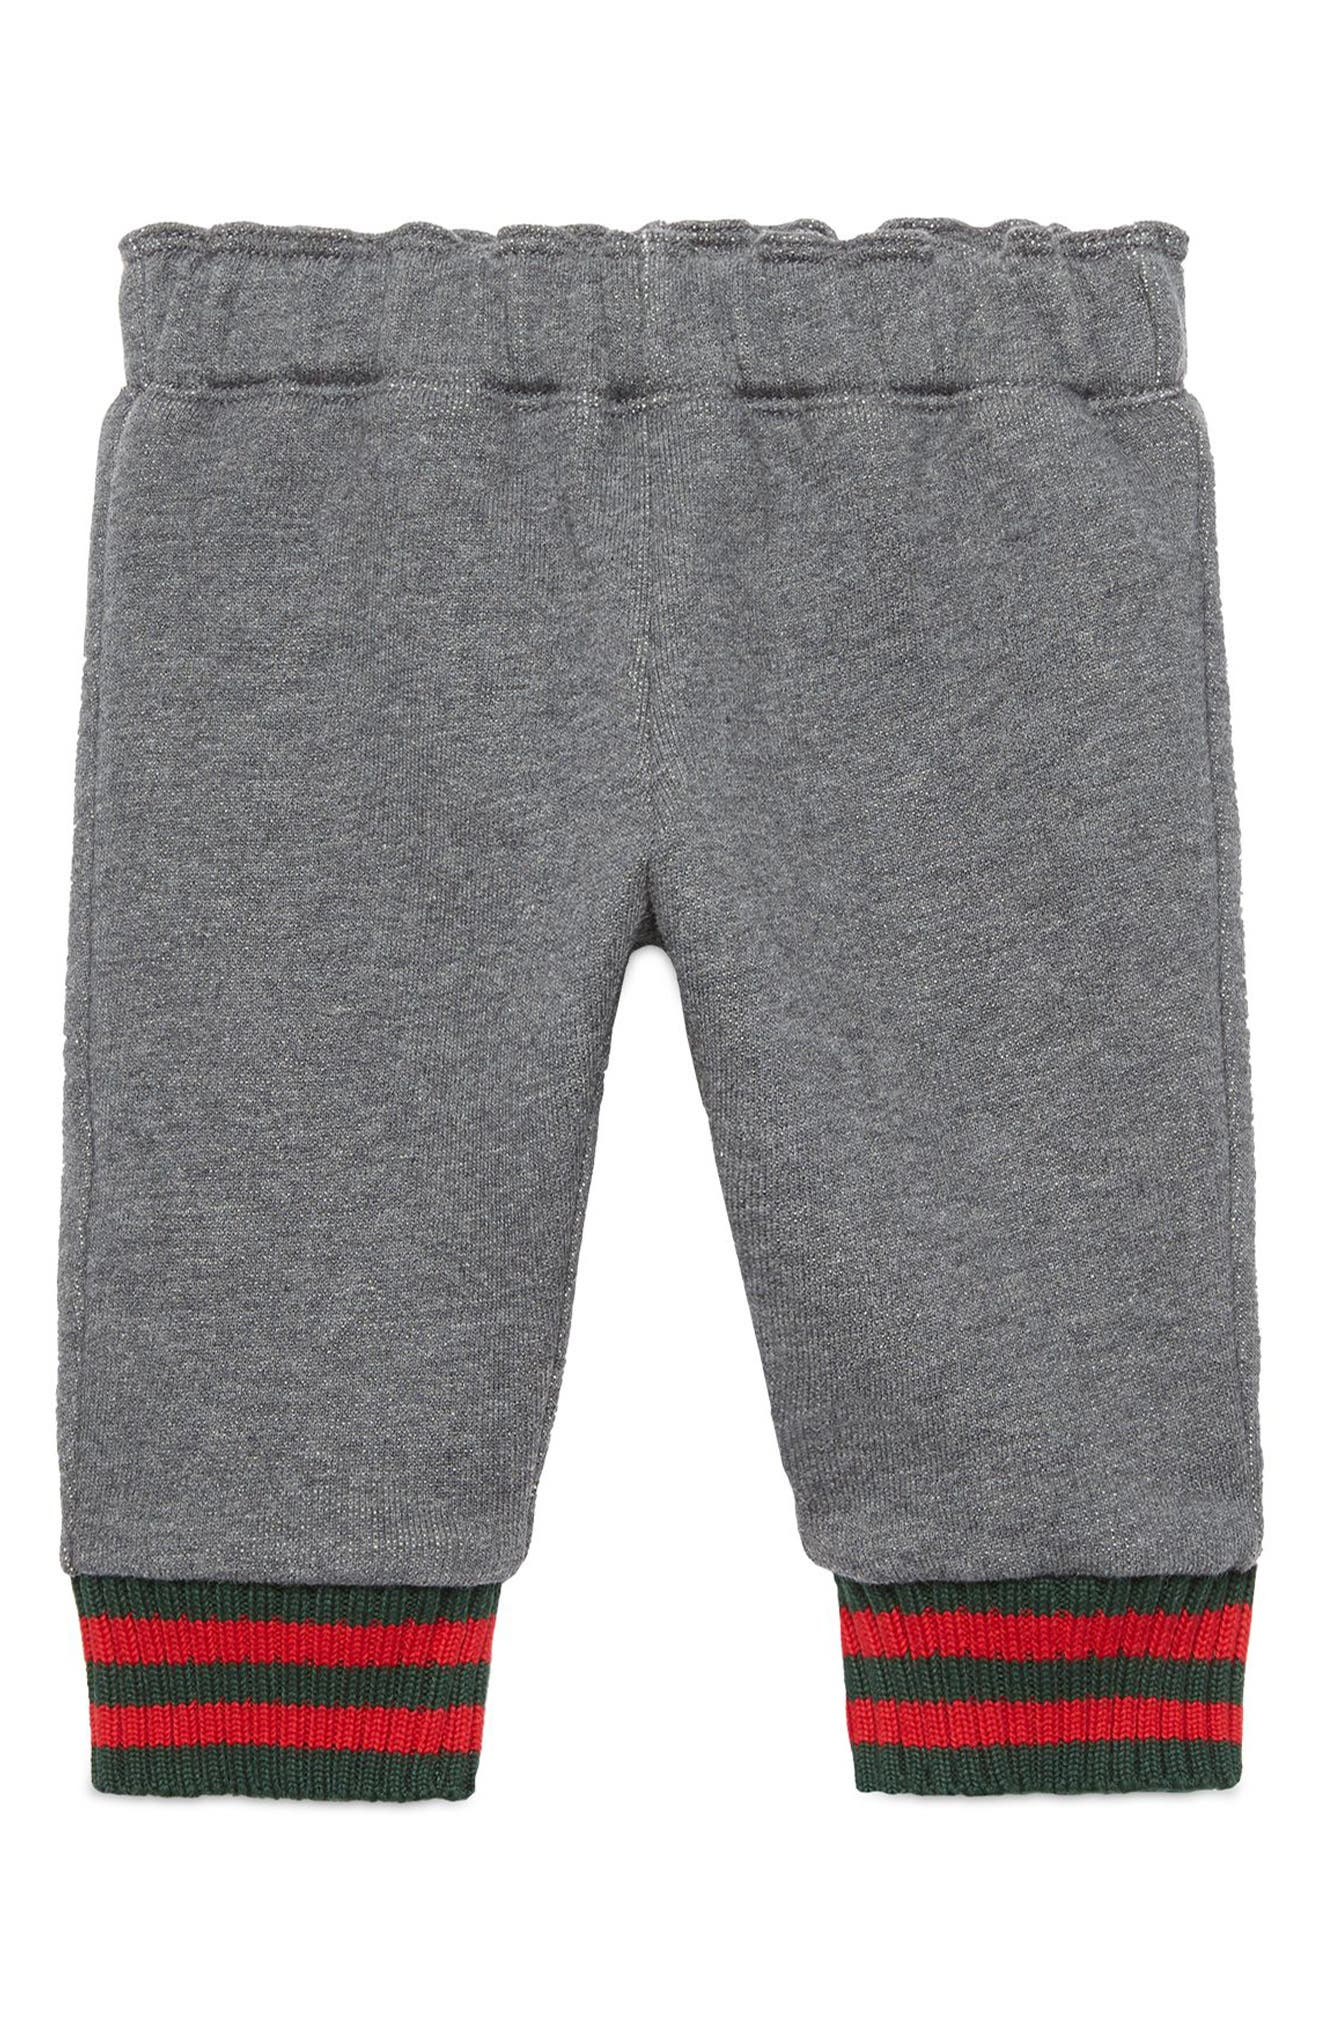 Gucci Jogger Pants (Baby Boys)